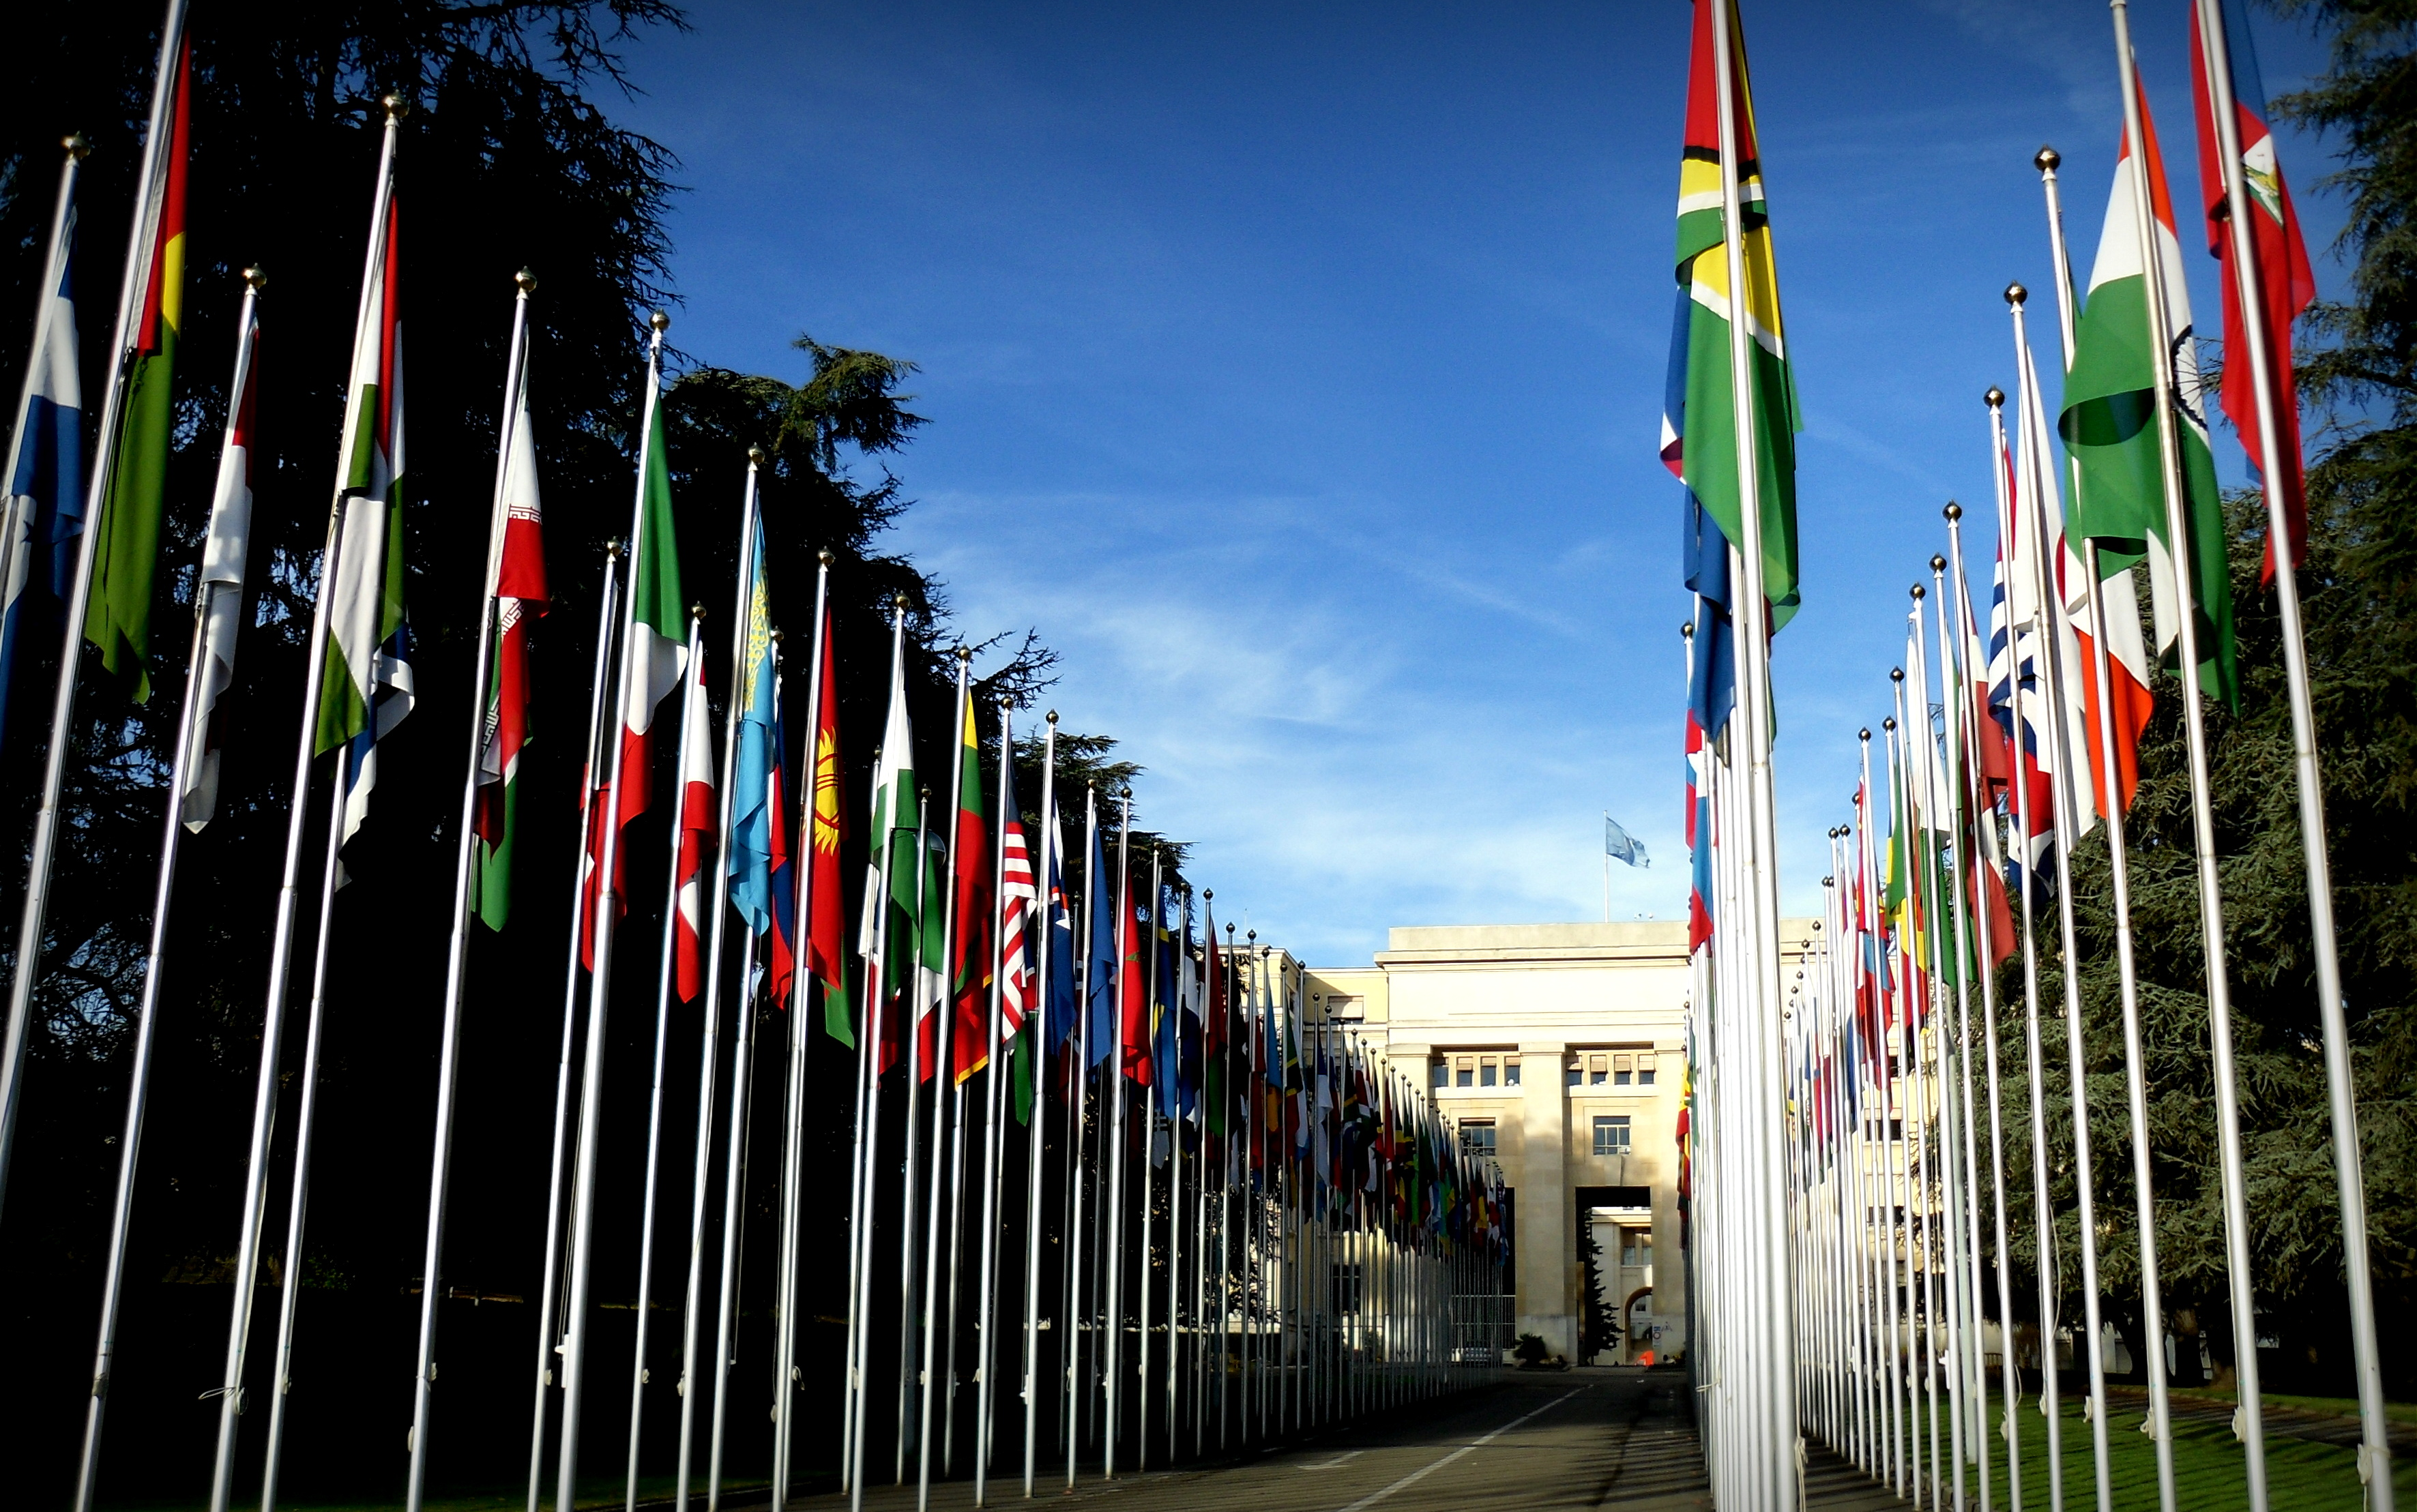 Palais_des_Nations_credit_Eferrante_wikicommons